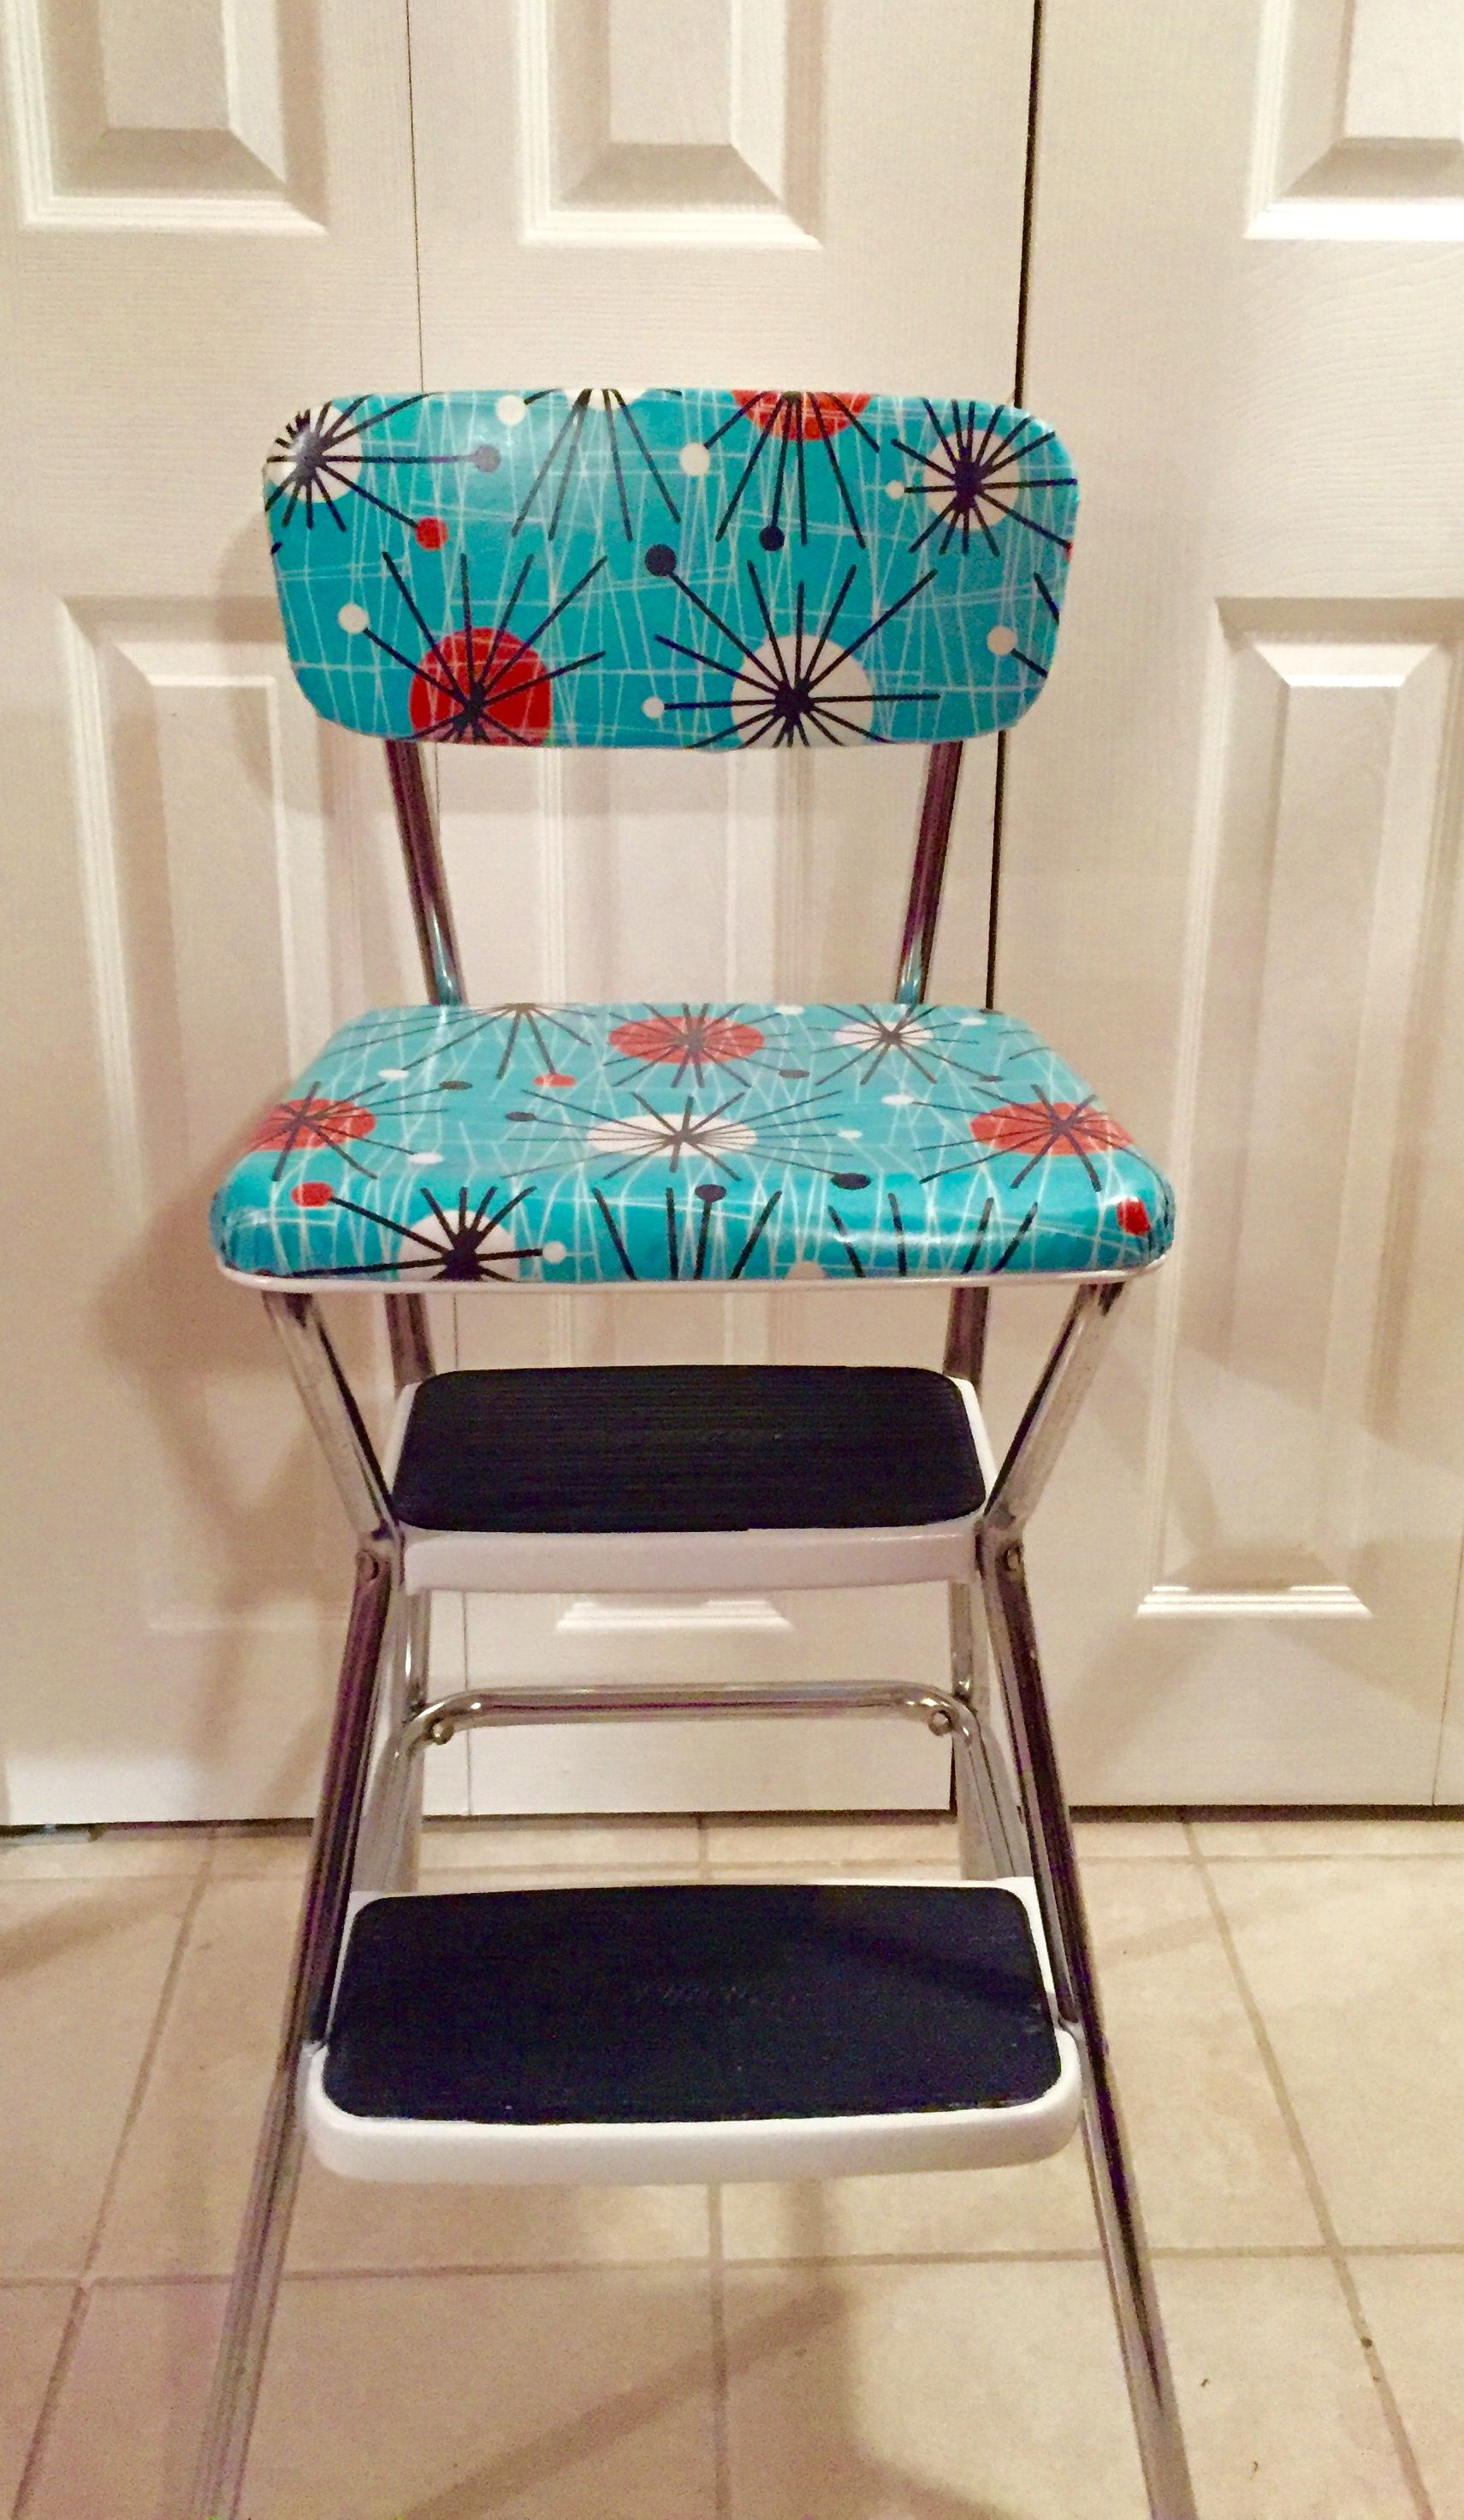 Refinished retro COSCO stepping stool kitchen chair www.furnishly ...